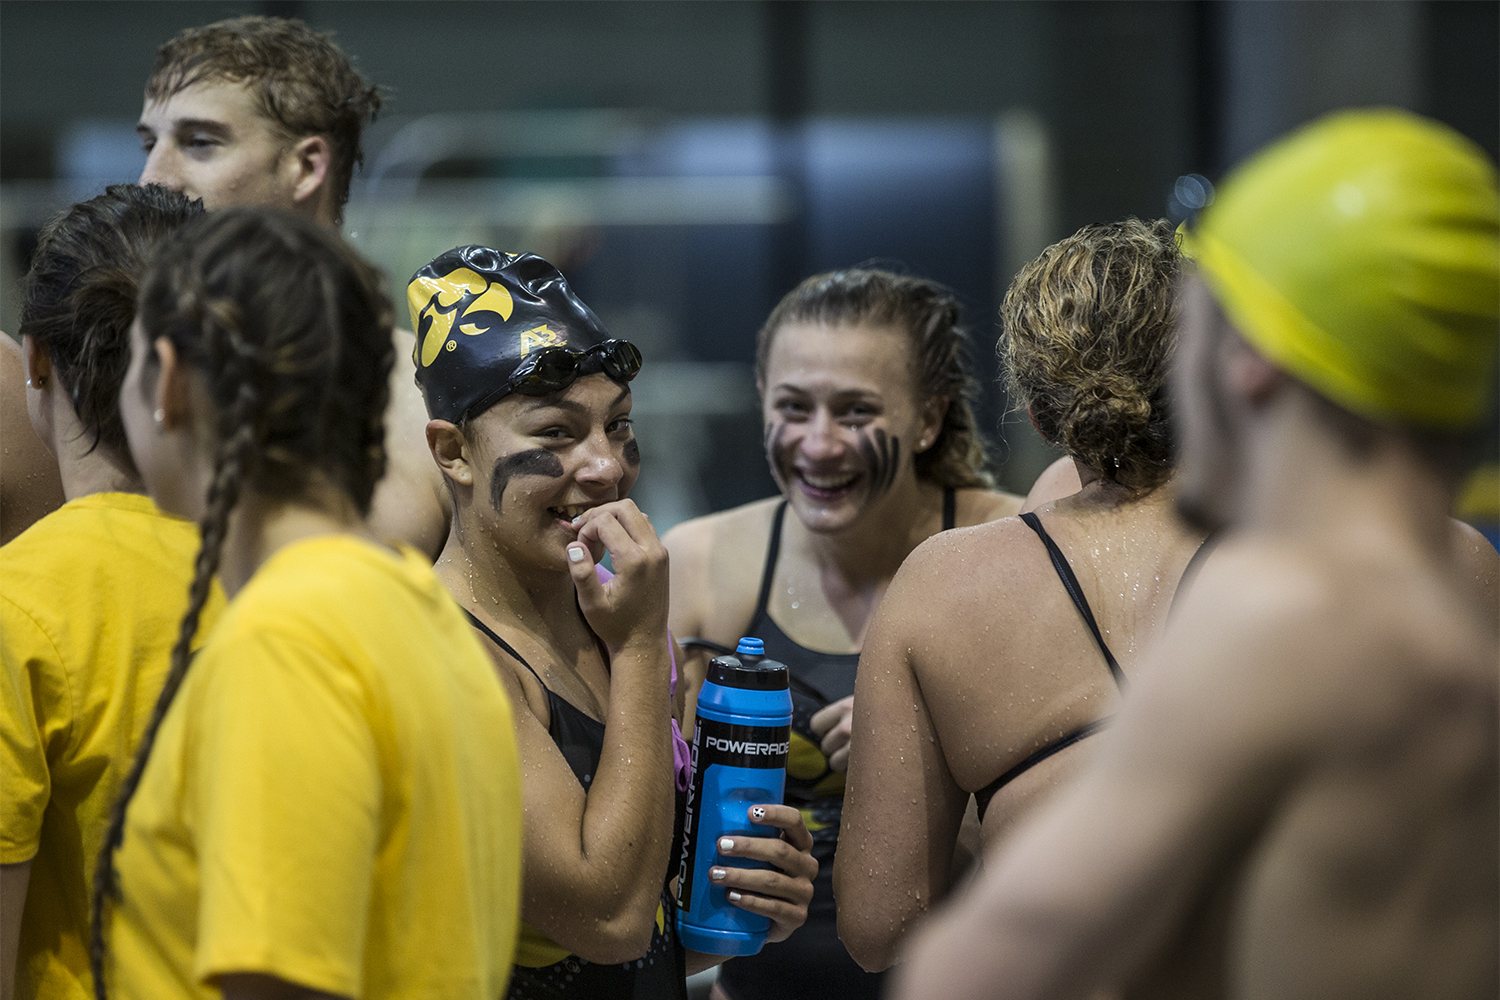 Swimmers+laugh+between+events+during+the+Iowa+Swimming+and+Diving+Intrasquad+Meet+at+the+Campus+Recreation+and+Wellness+Center+on+Saturday%2C+September+29%2C+2018.+